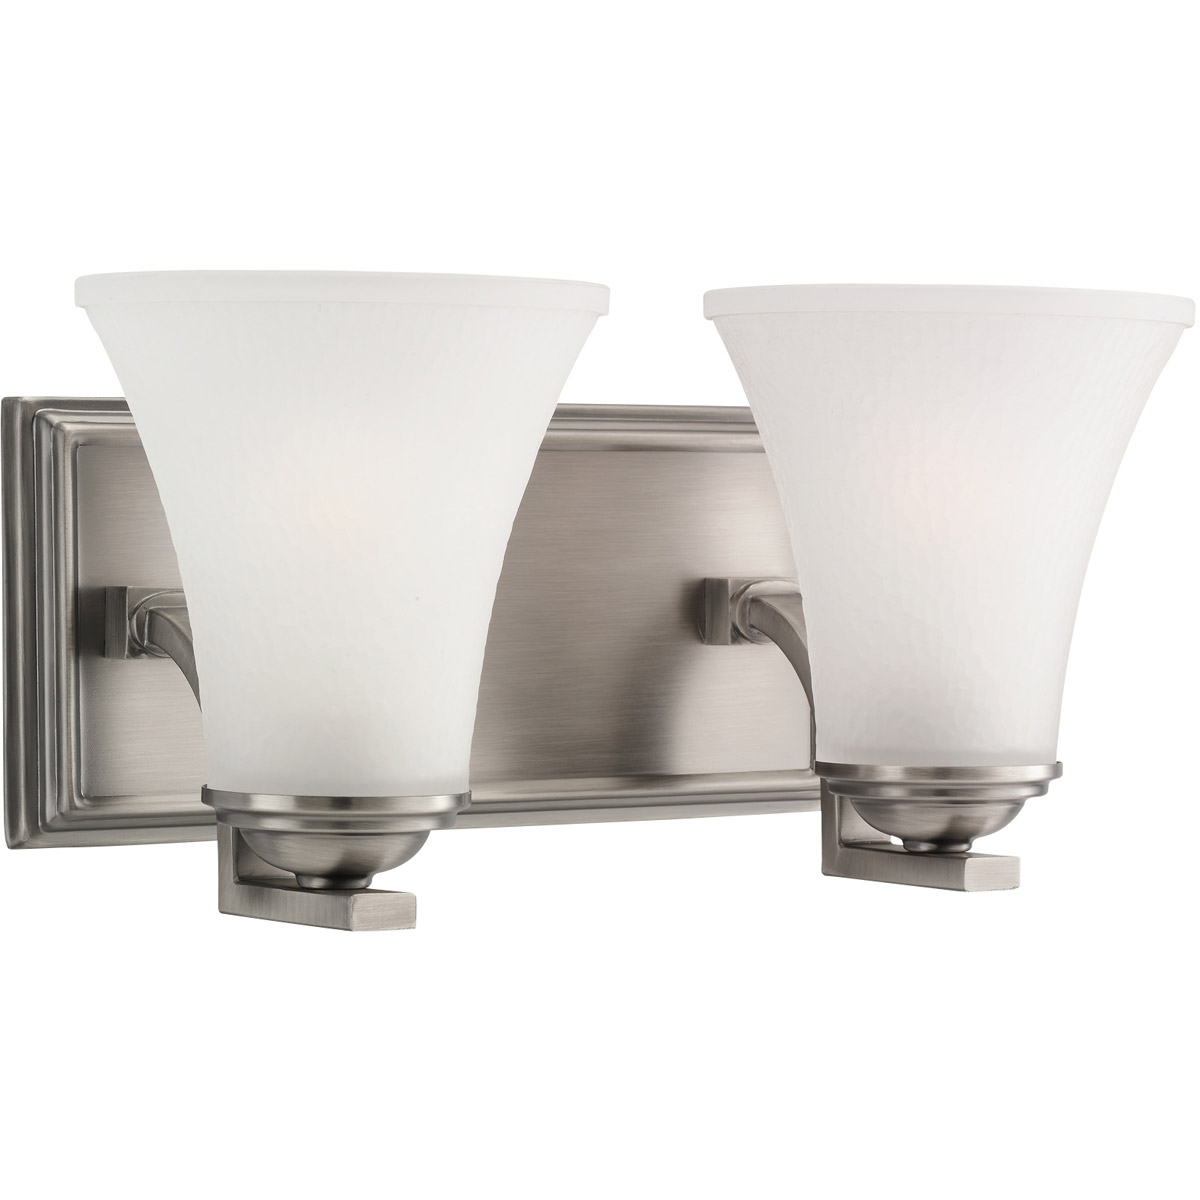 Sea Gull Lighting Somerton 2 Light Bath Vanity in Antique Brushed Nickel 44375-965